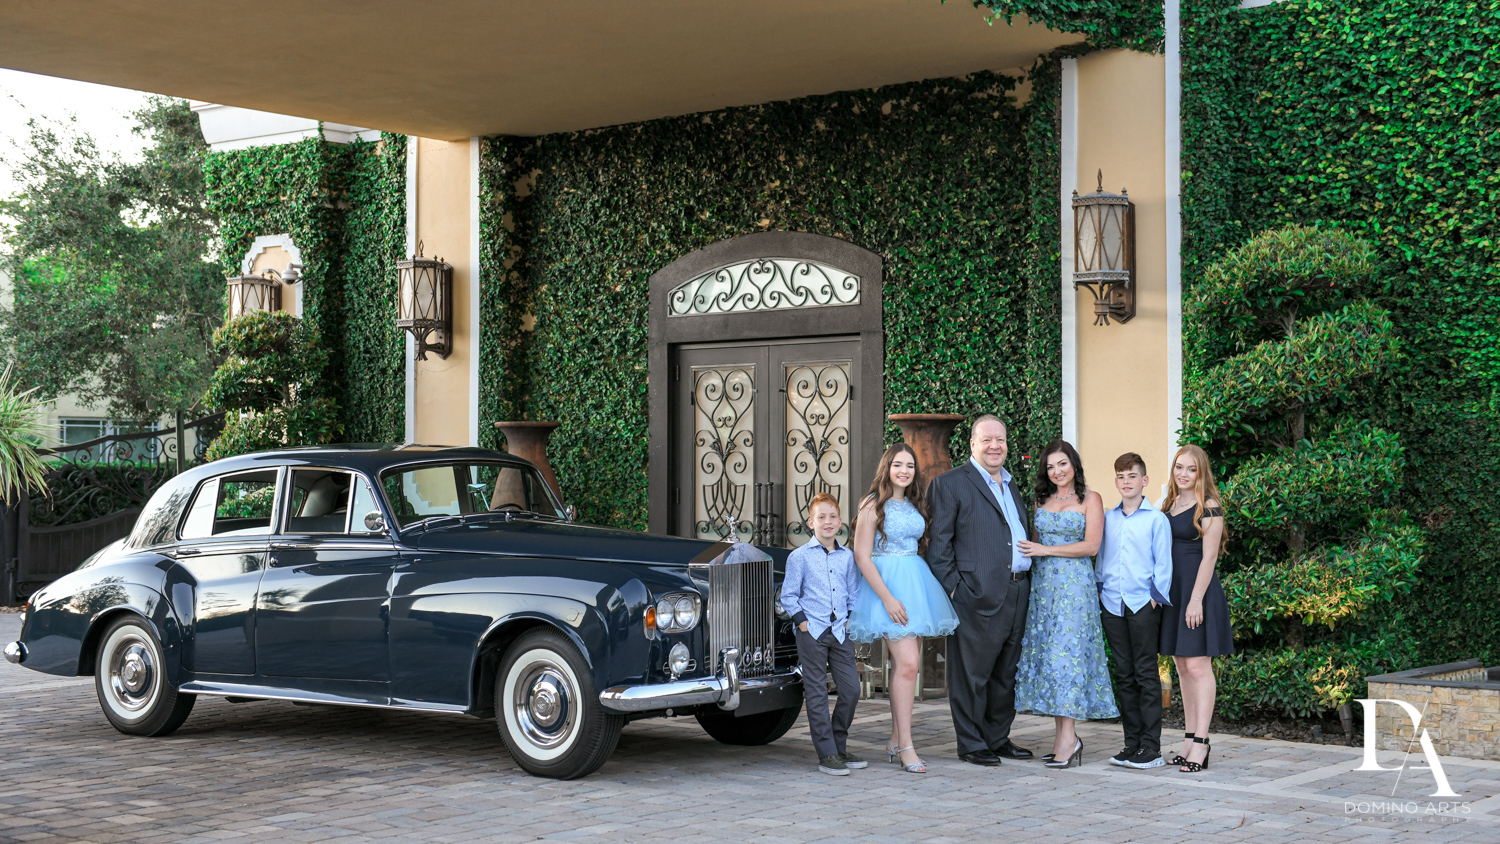 classic car at Exotic Moroccan BNai Mitzvah at Lavan by Domino Arts Photography